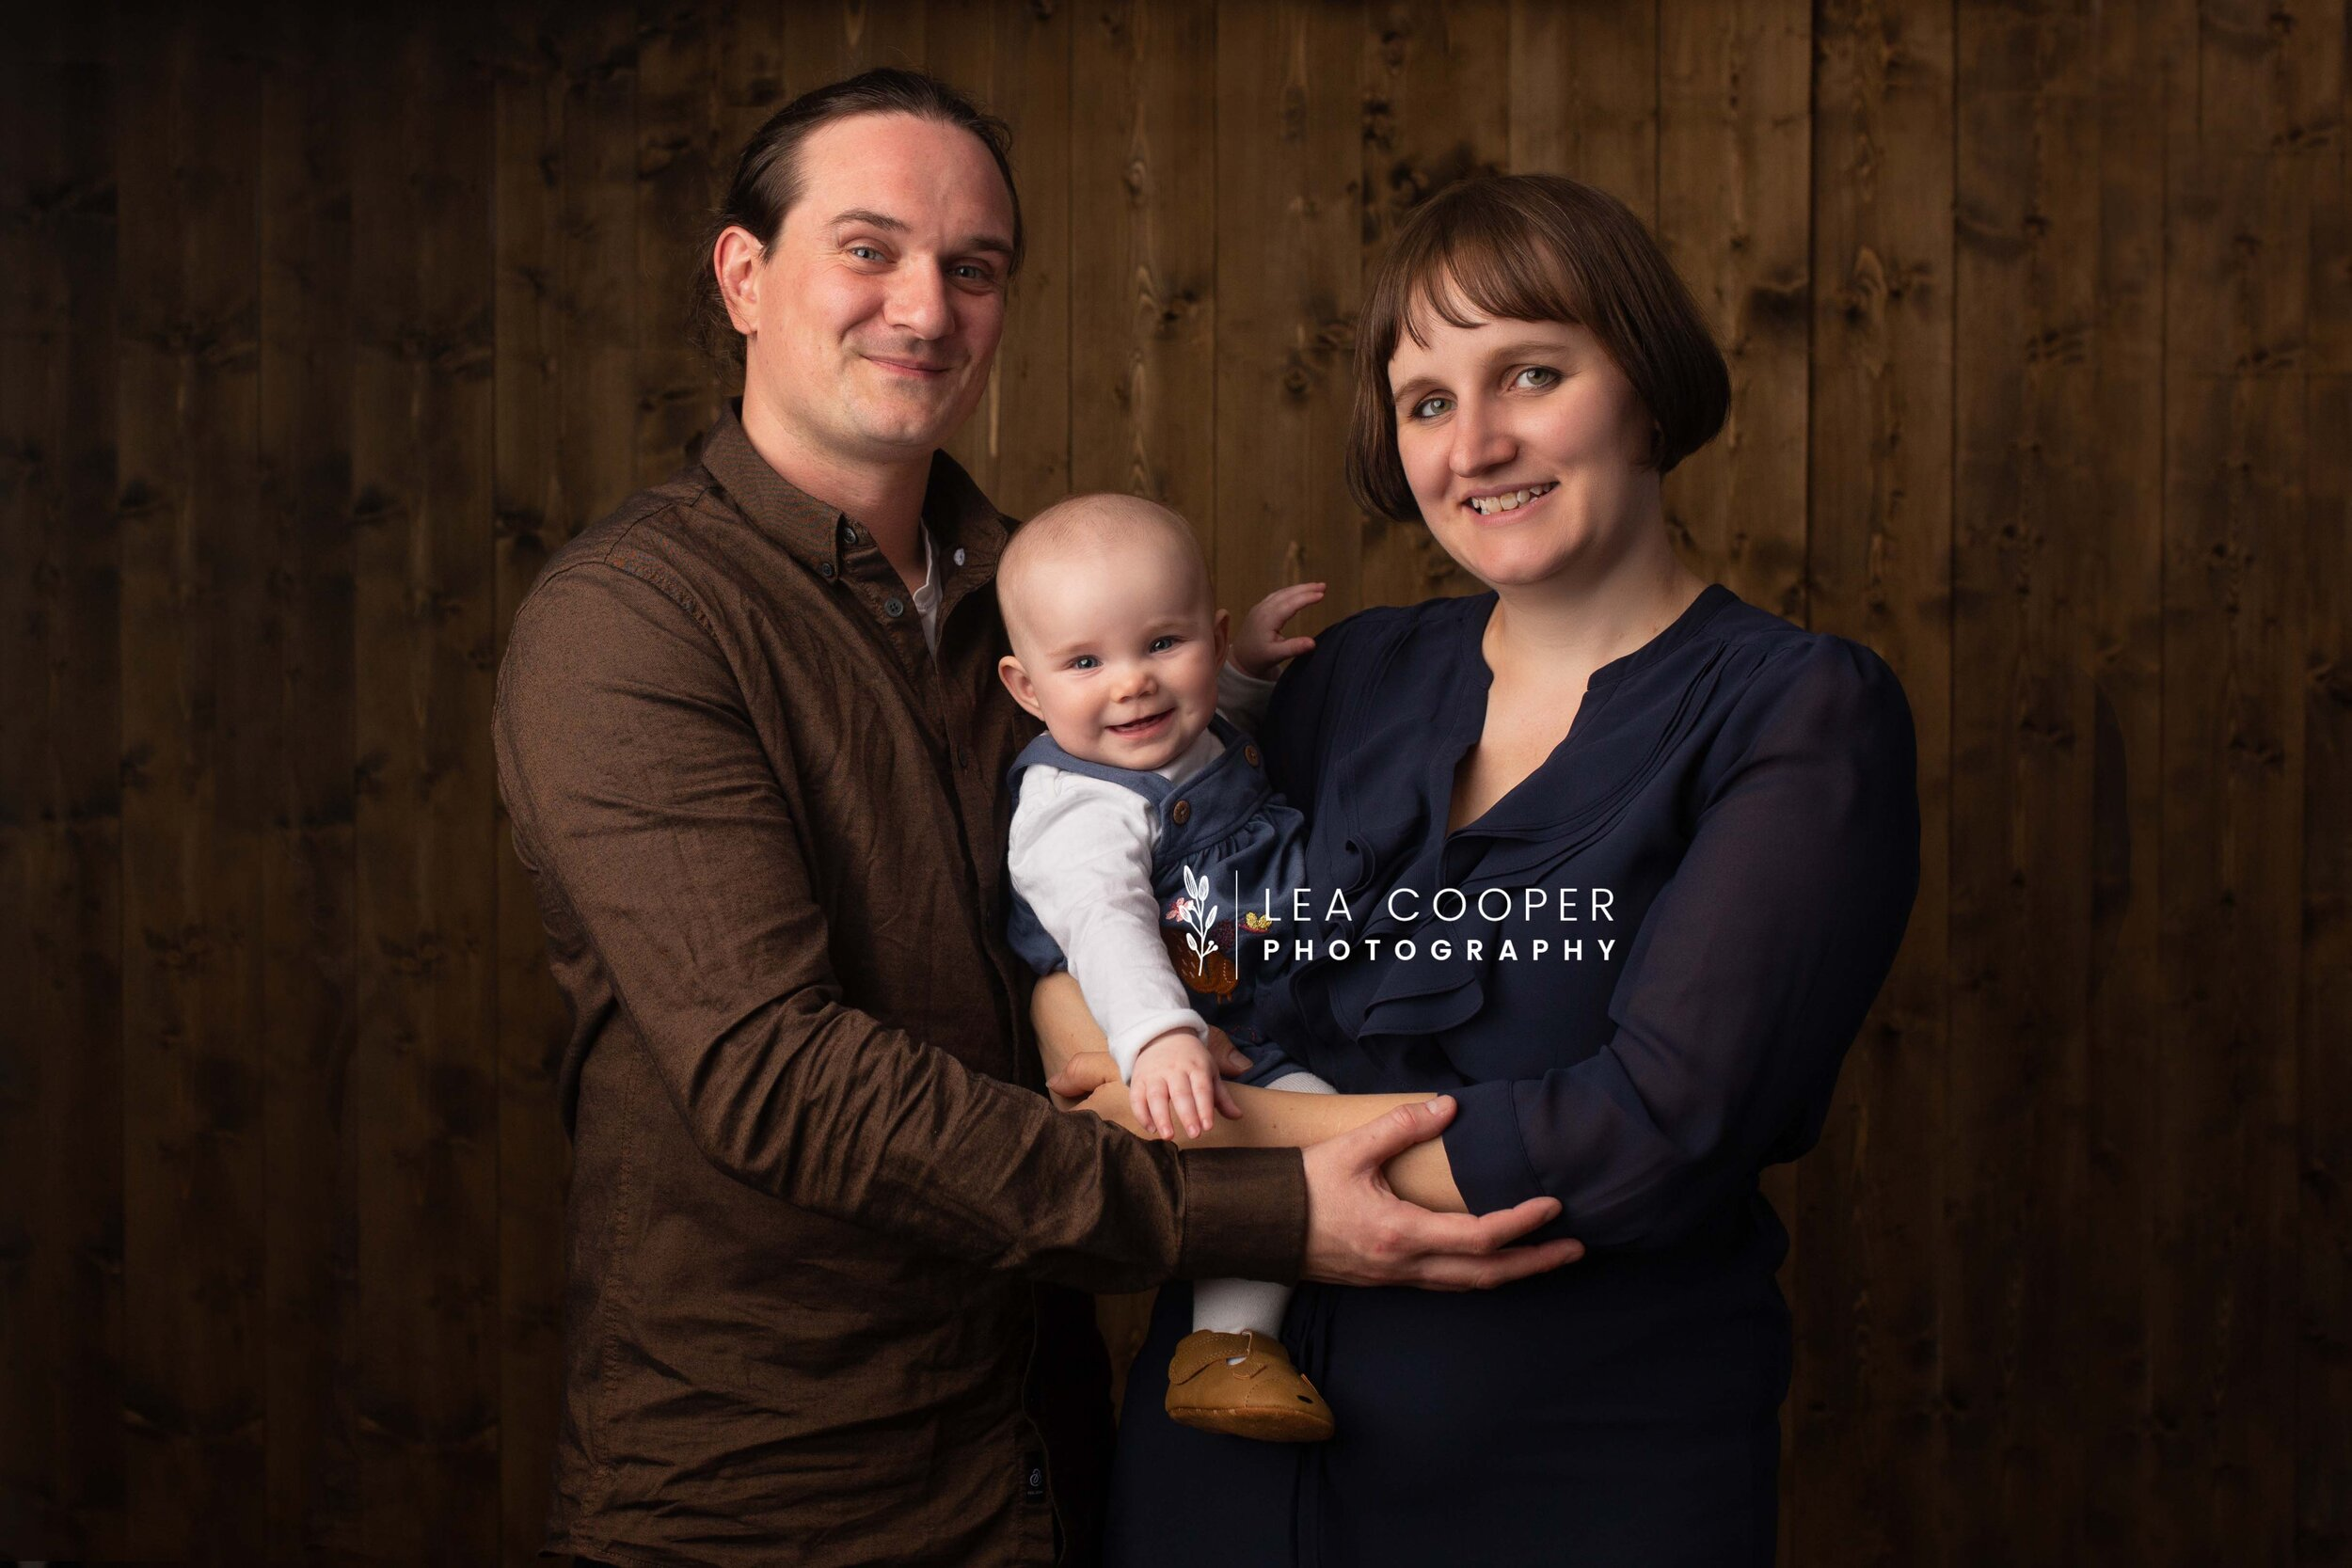 lea-cooper-photography-family-session-family-photoshoot-sitter-session-willenhall-wolverhampton-west-midlands-19.jpg